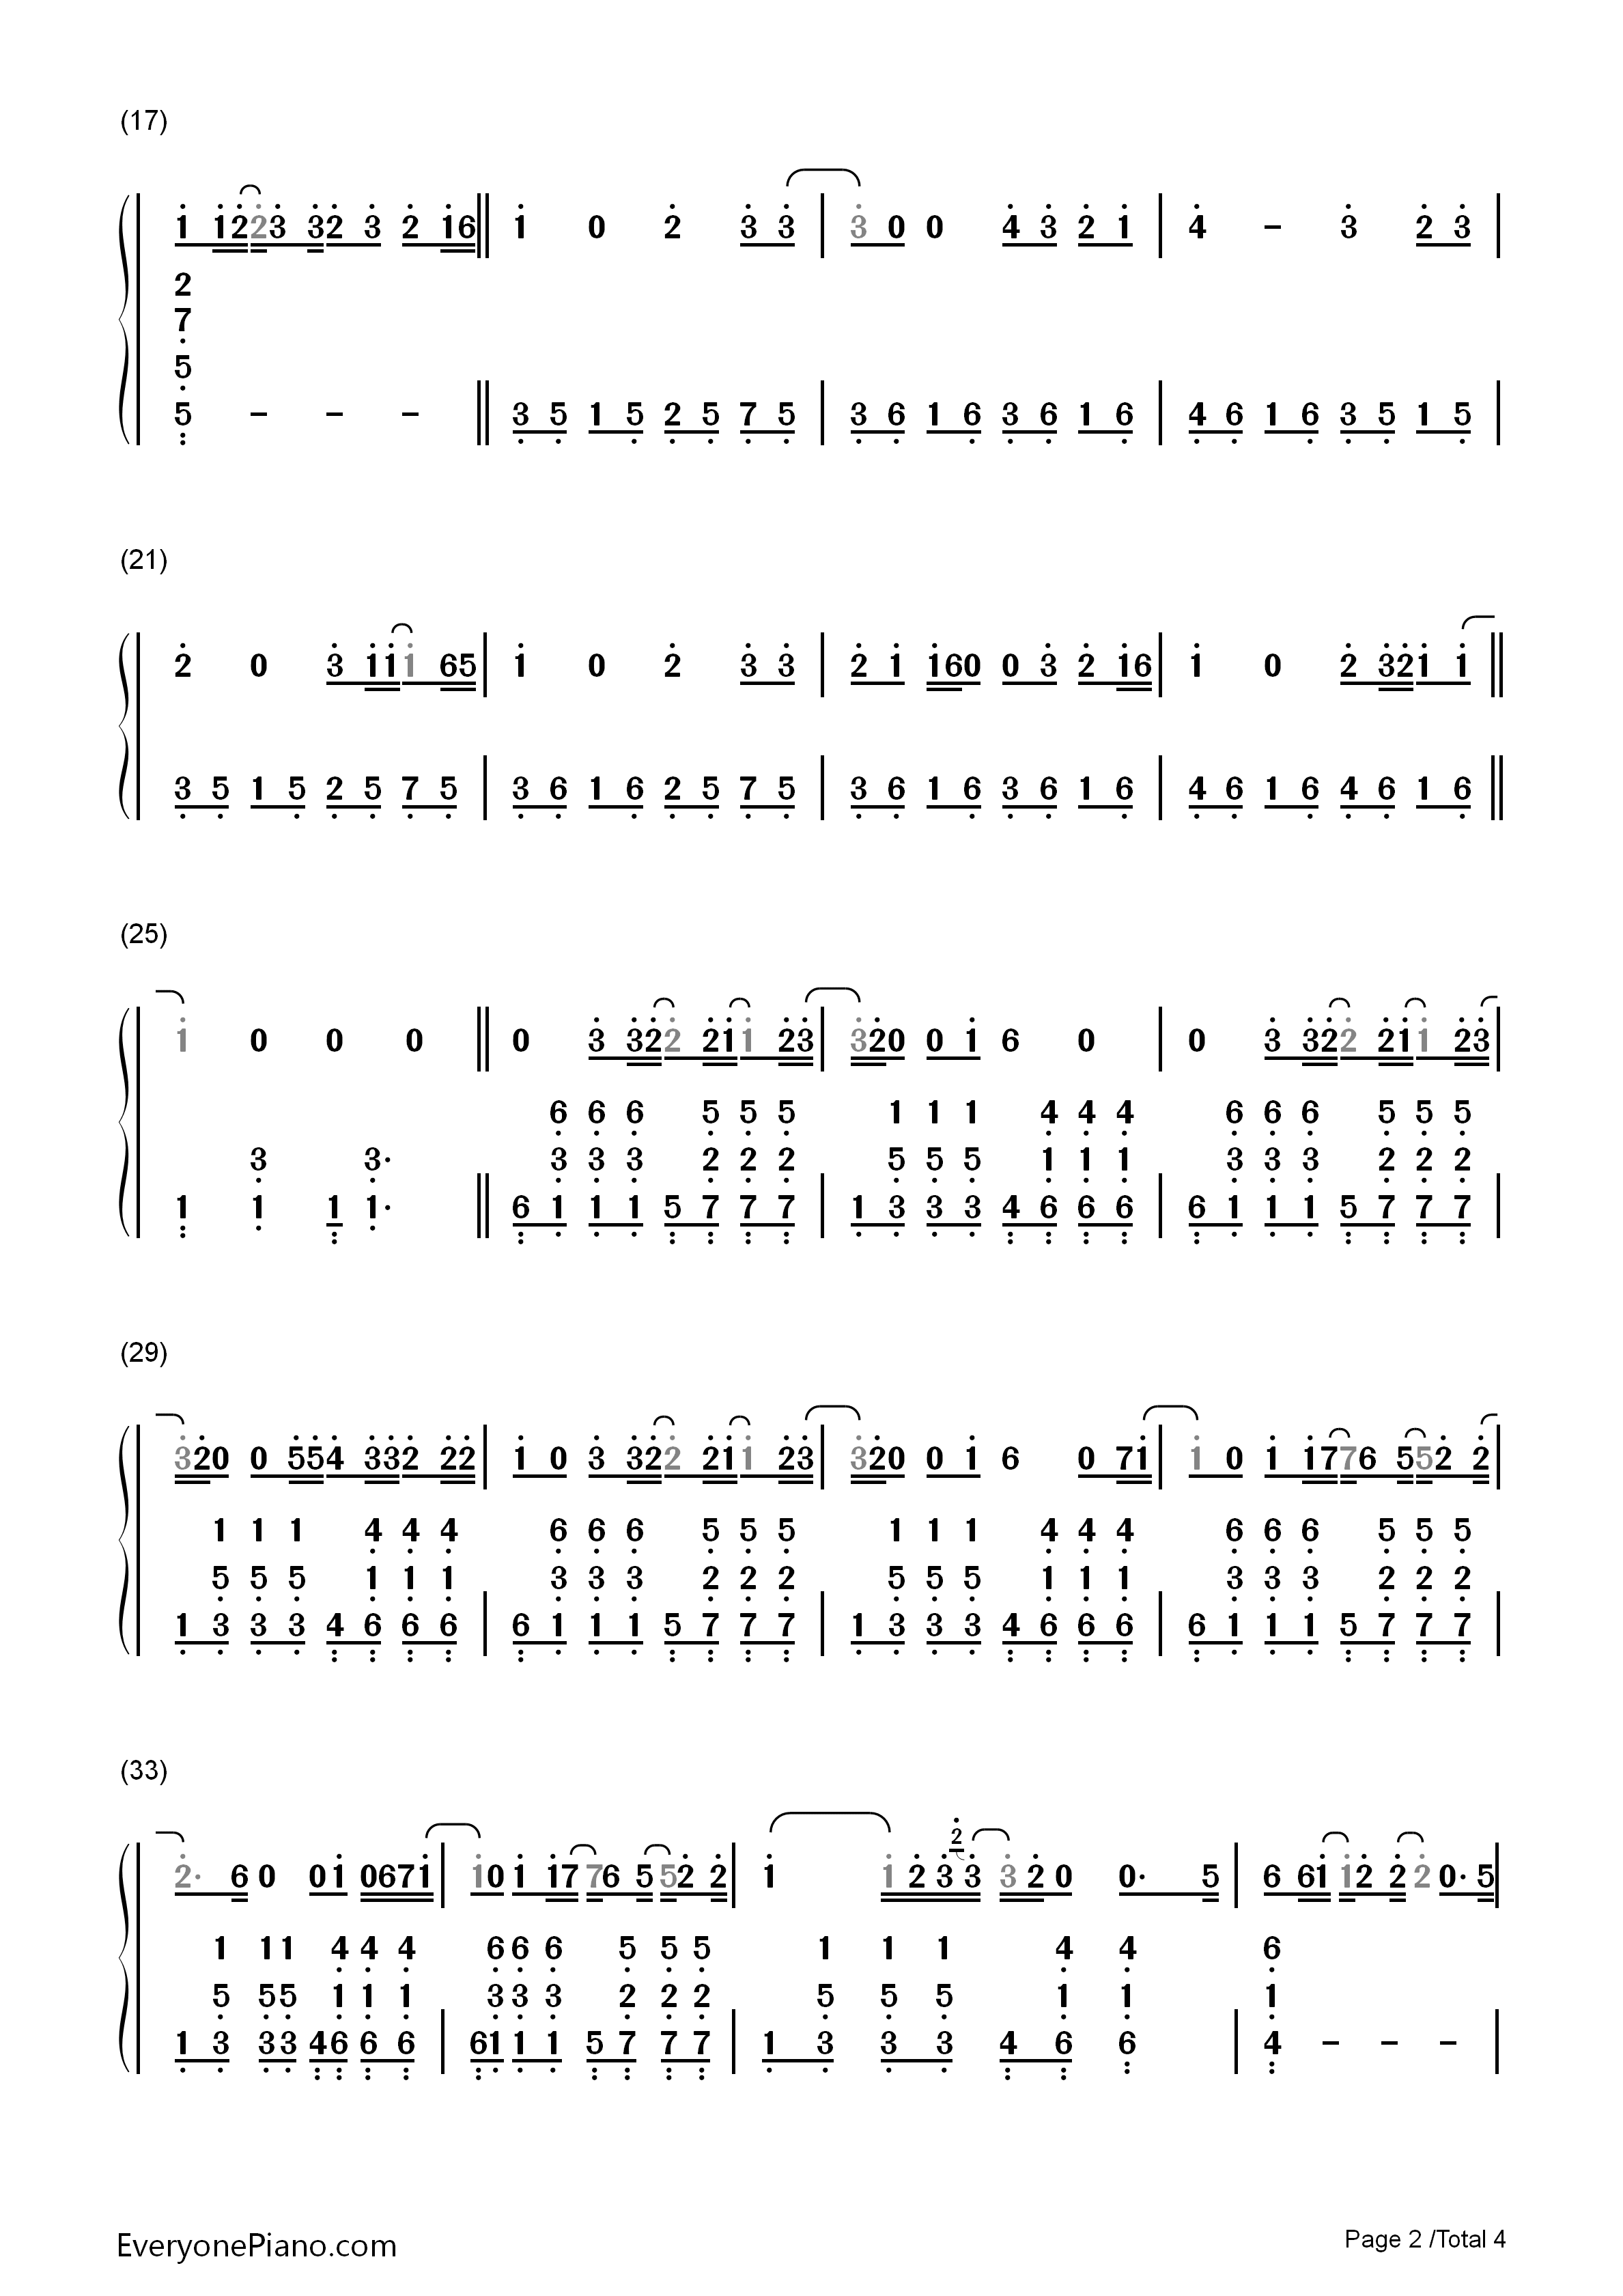 One Call Away-Charlie Puth Numbered Musical Notation Preview 2-Free Piano Sheet Music u0026 Piano Chords